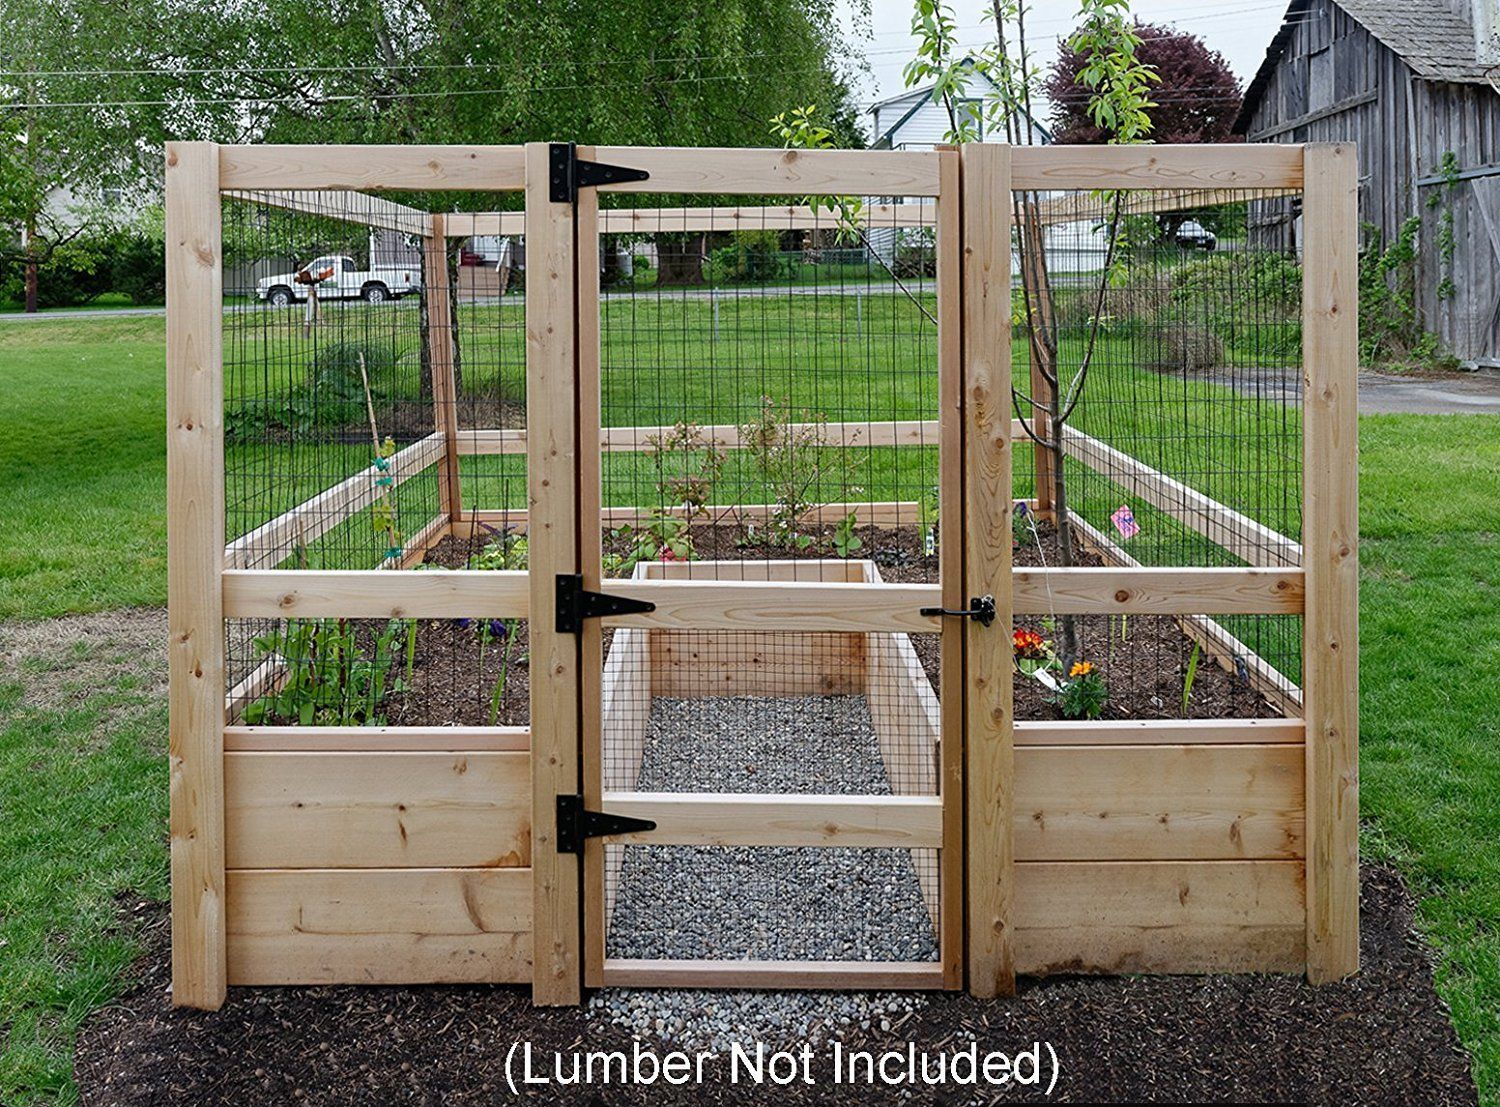 Raised Garden Bed Kit Planter 8 X 8 Fence Gate Hardware Gardening Outdoor Ebay Raised Garden Bed Kits Garden Bed Kits Vegetable Garden Raised Beds